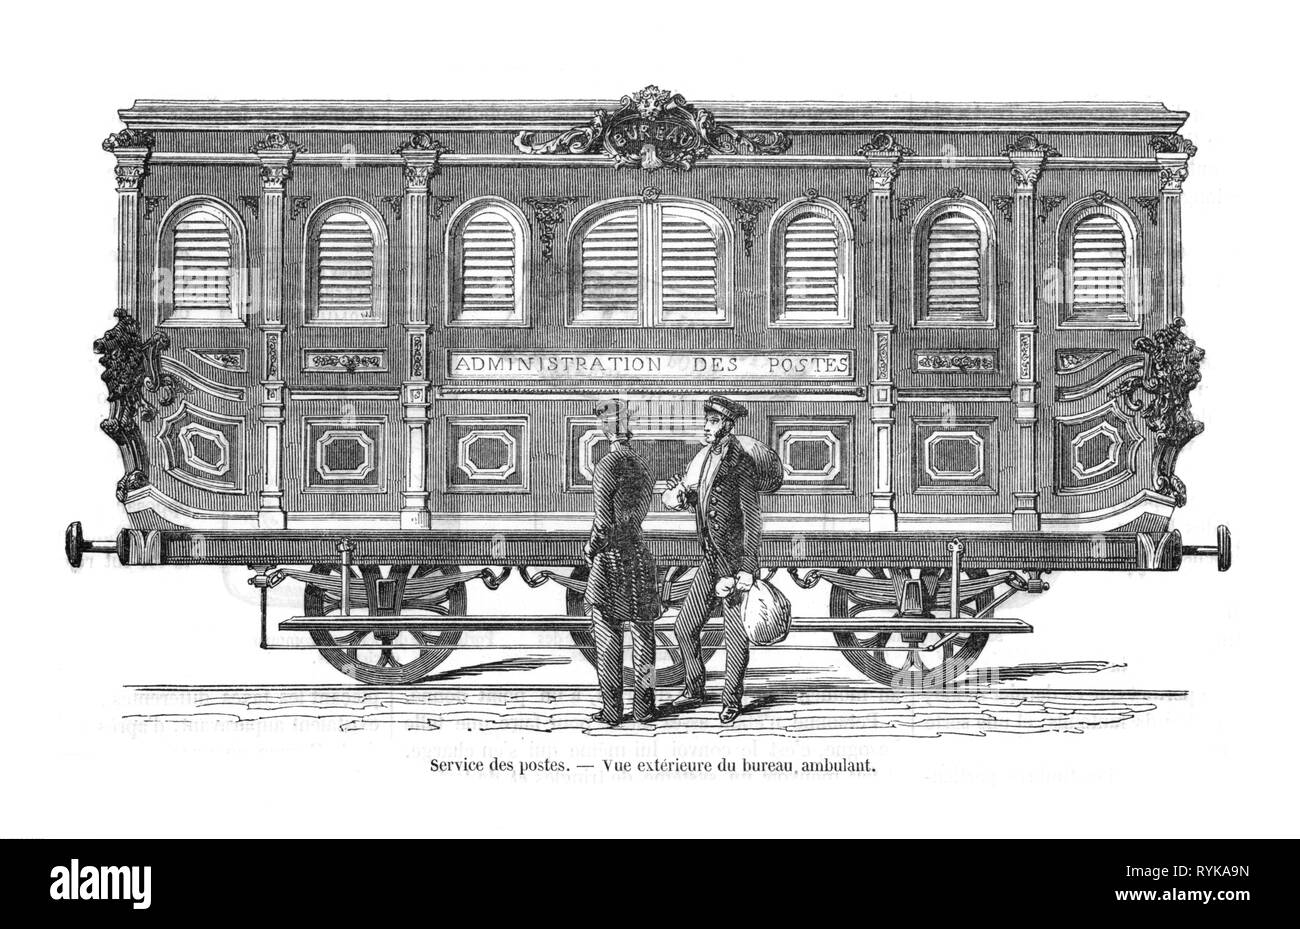 mail, railway, Travelling Post Office, mail car of the French state post, exterior view with two employees, wood engraving, France, circa 1840, Additional-Rights-Clearance-Info-Not-Available - Stock Image